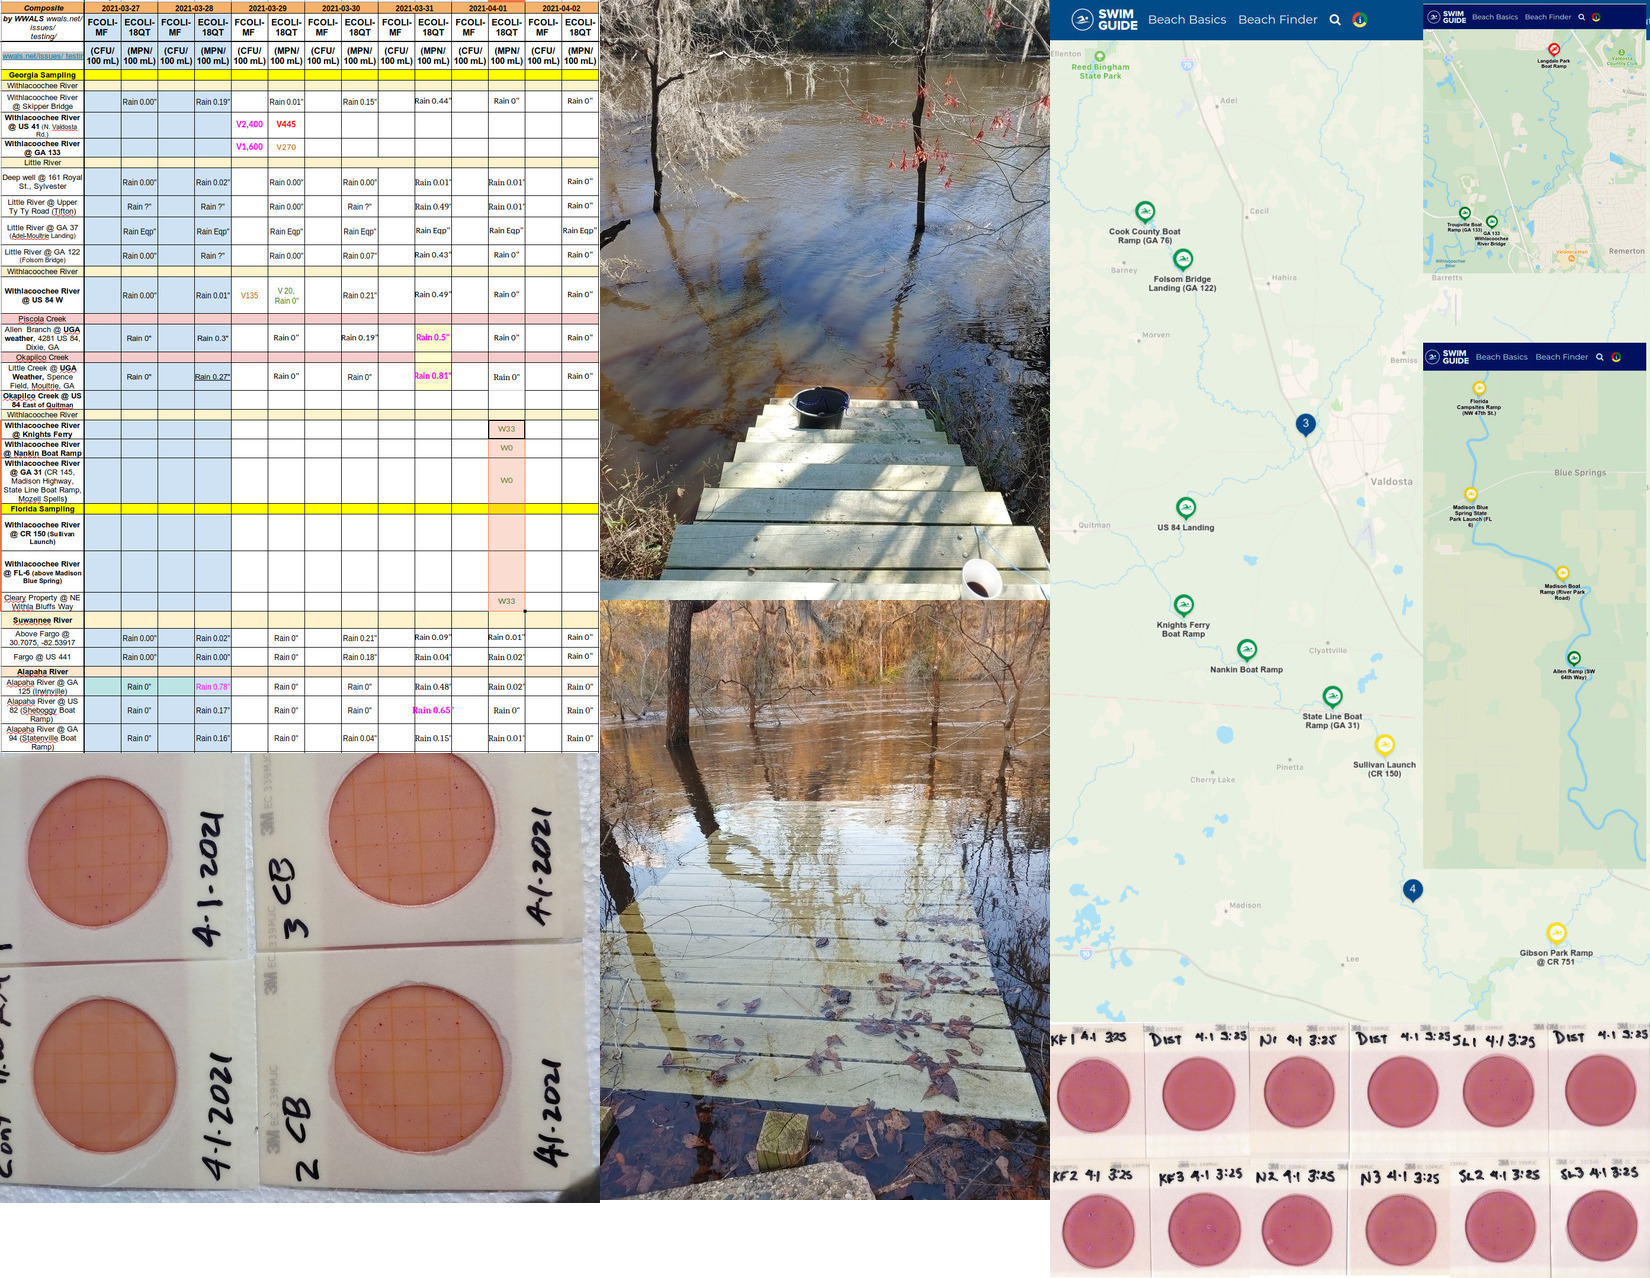 [Clean results, Withlacoochee River down and up, Swim Guide]